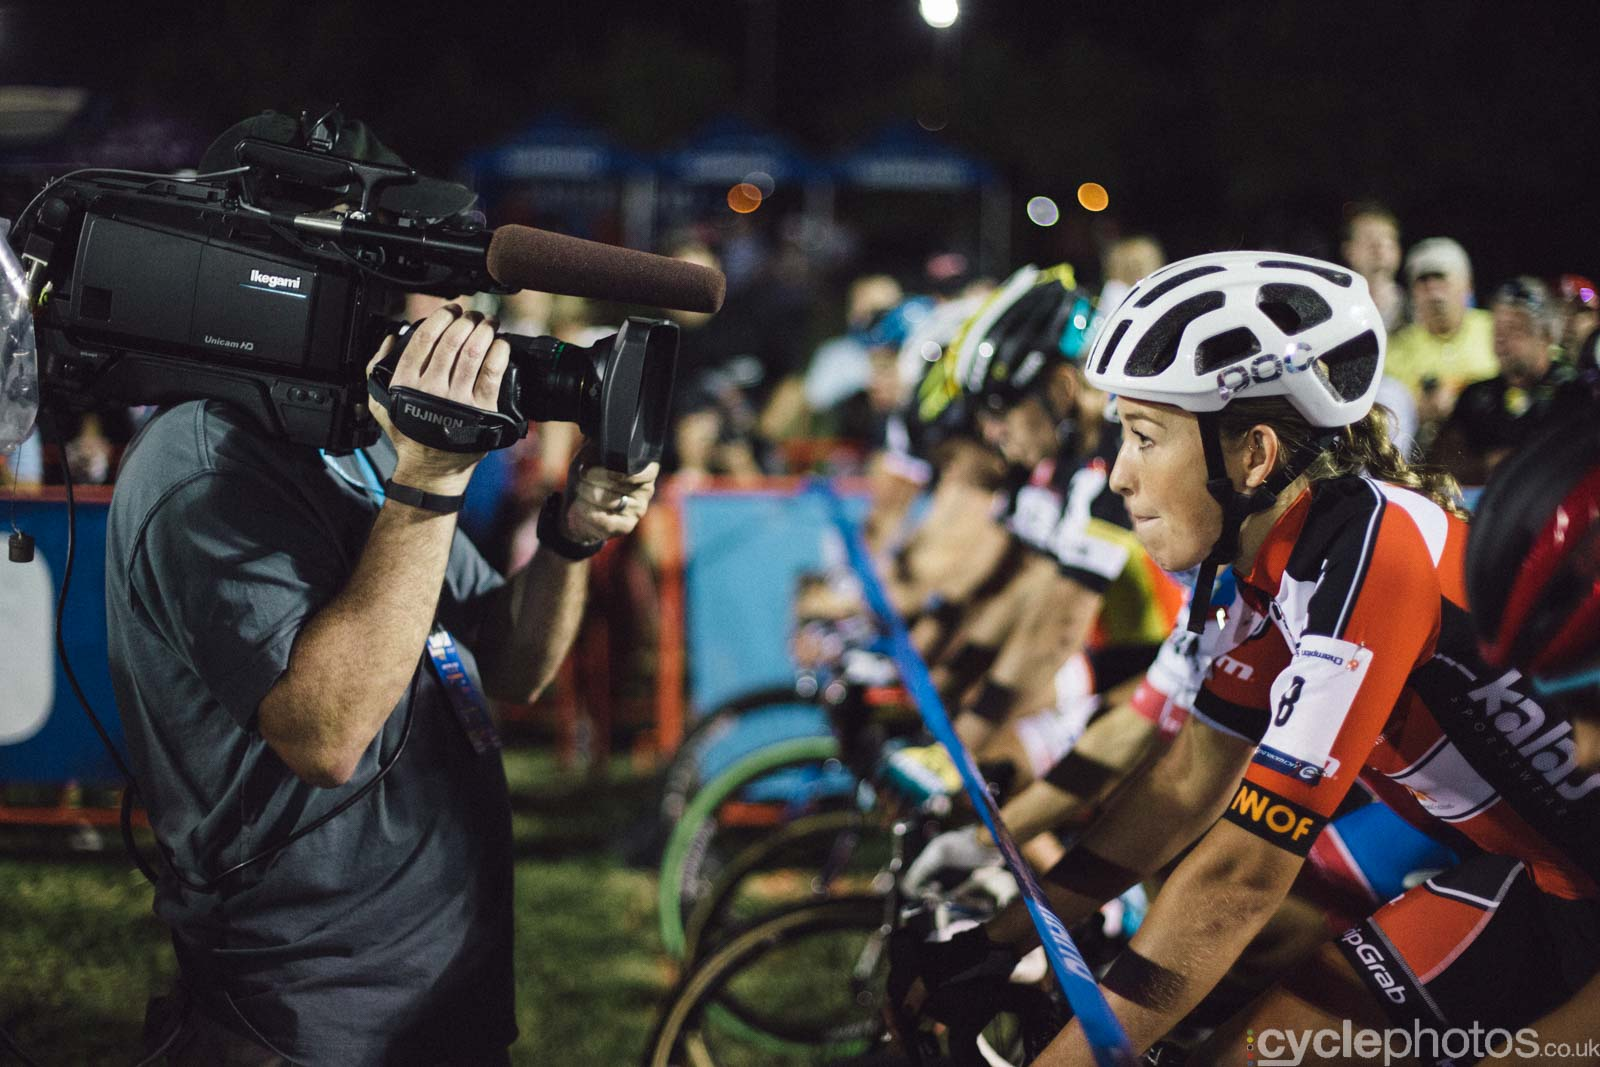 Sophie de Boer concentrates before Crossvegas, the first round of the 2015 UCI Cyclocross World race in Las Vegas, USA.